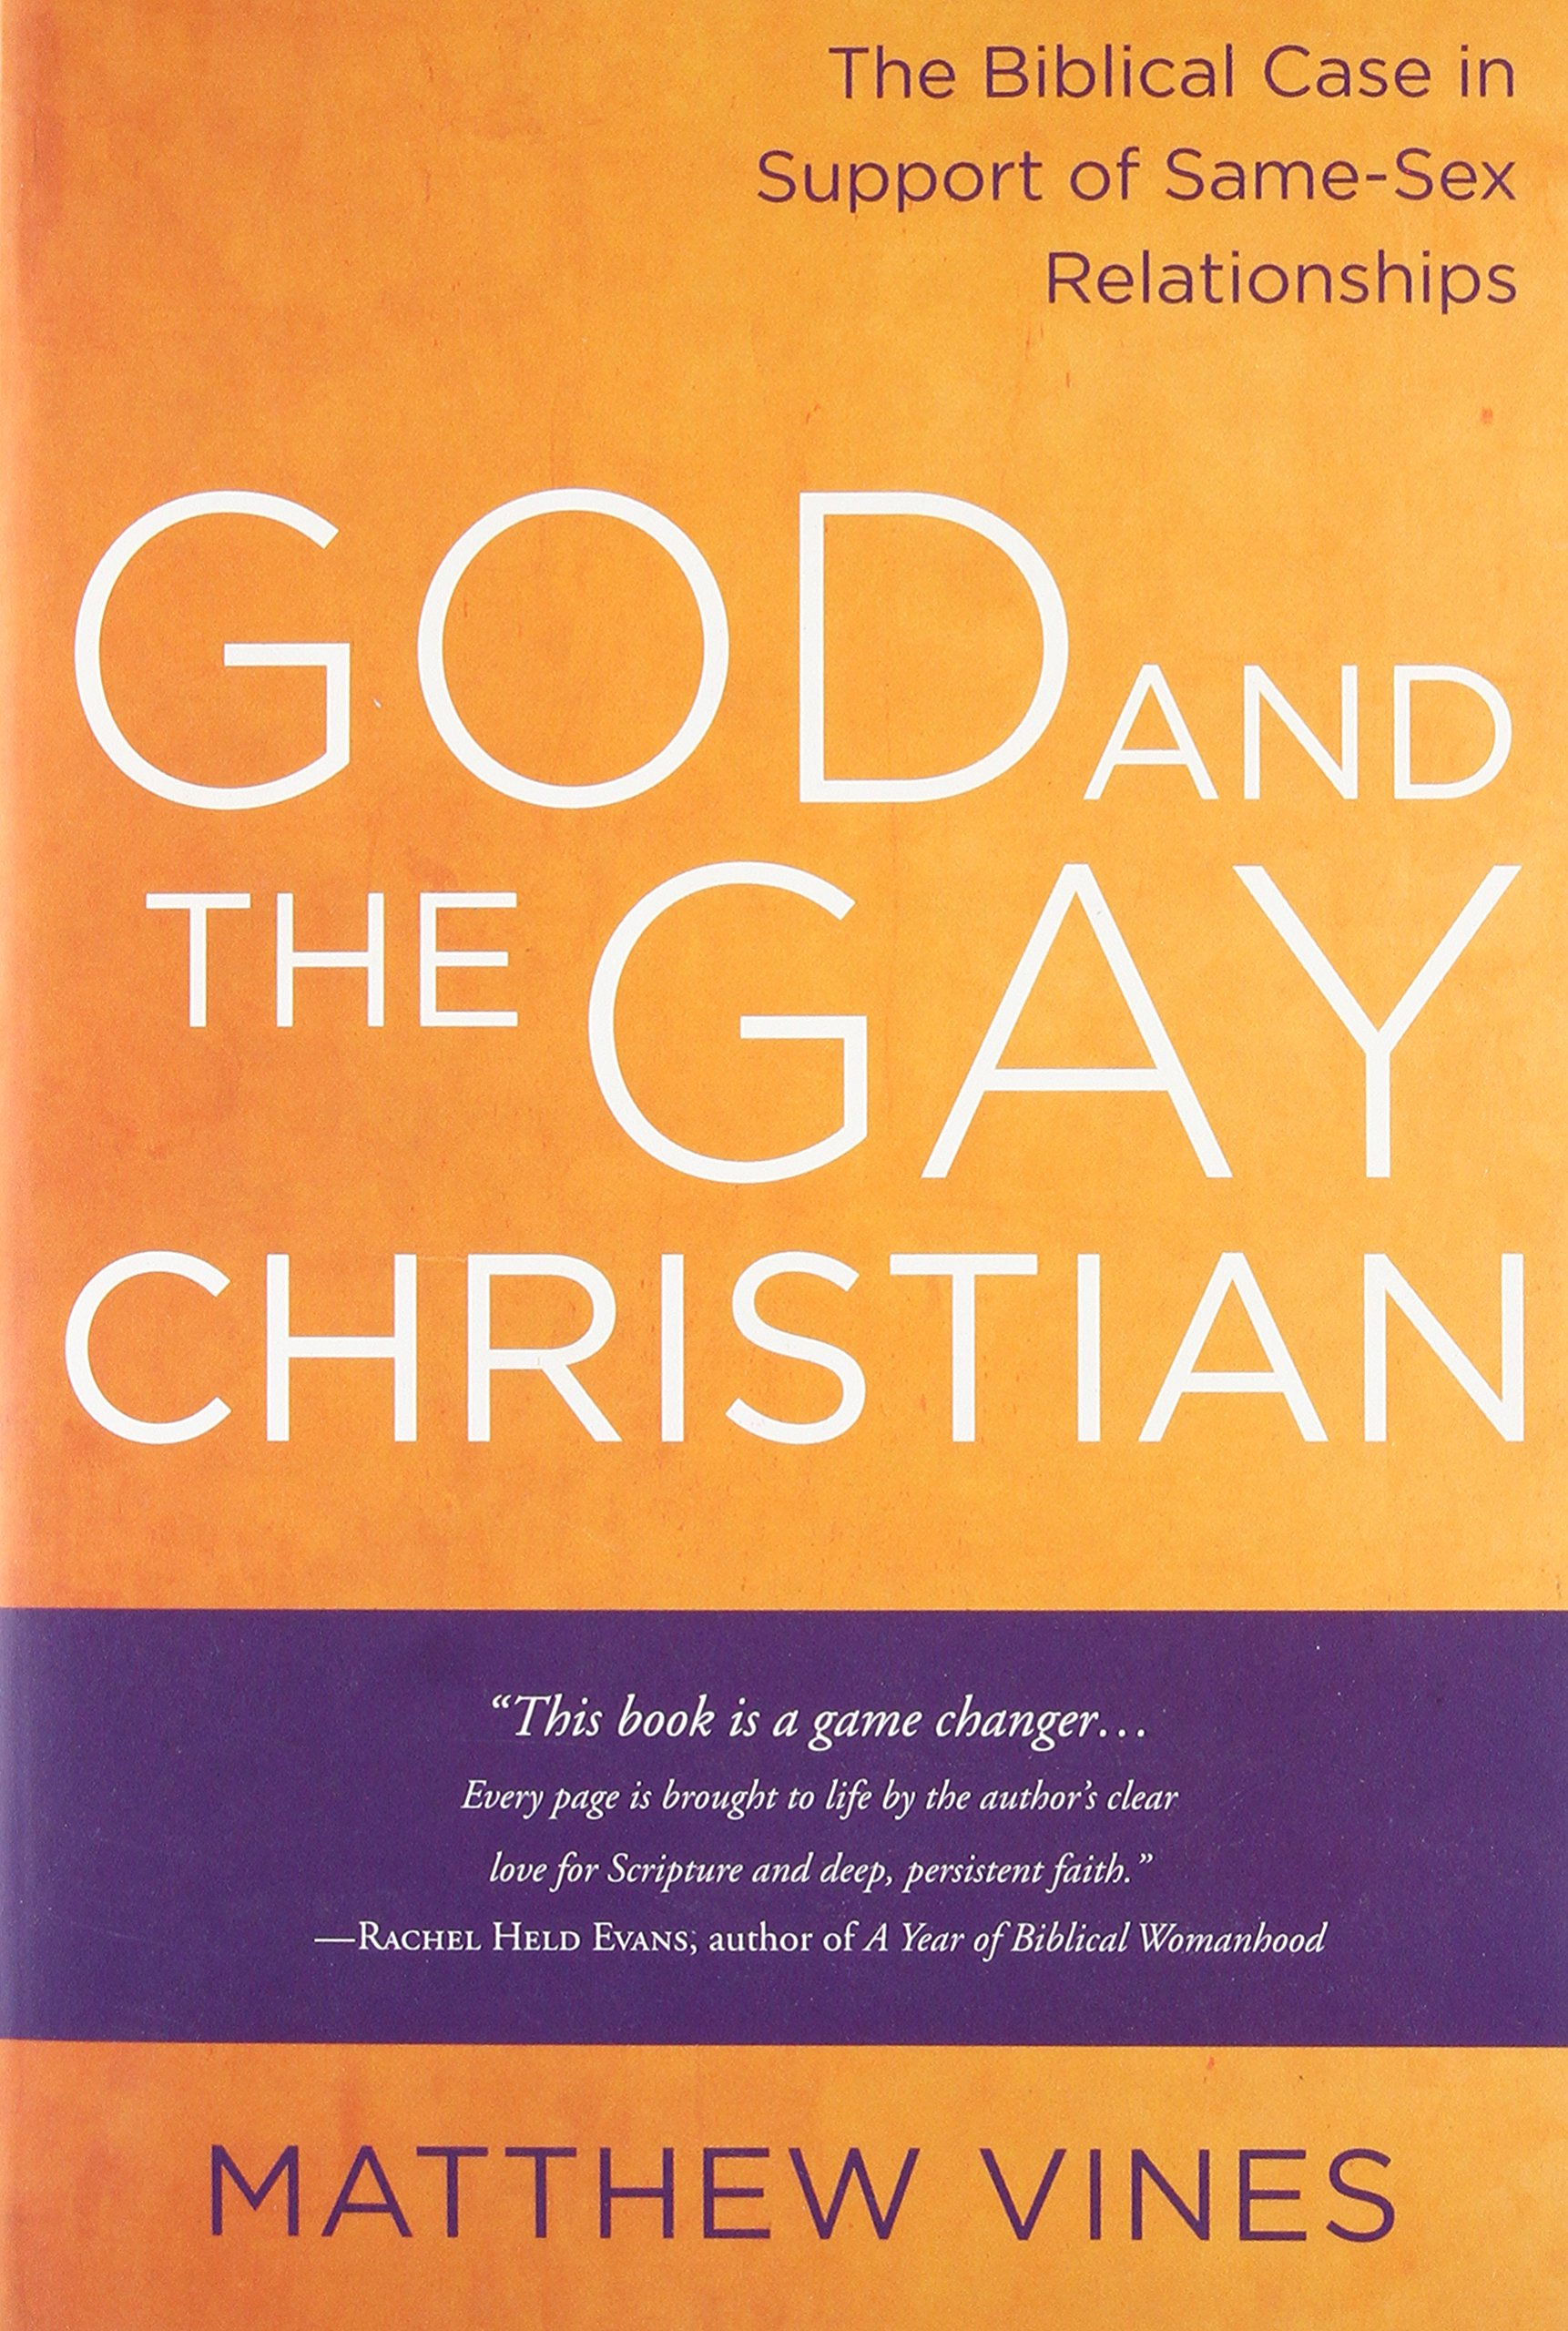 god and the christian the biblical case in support of same